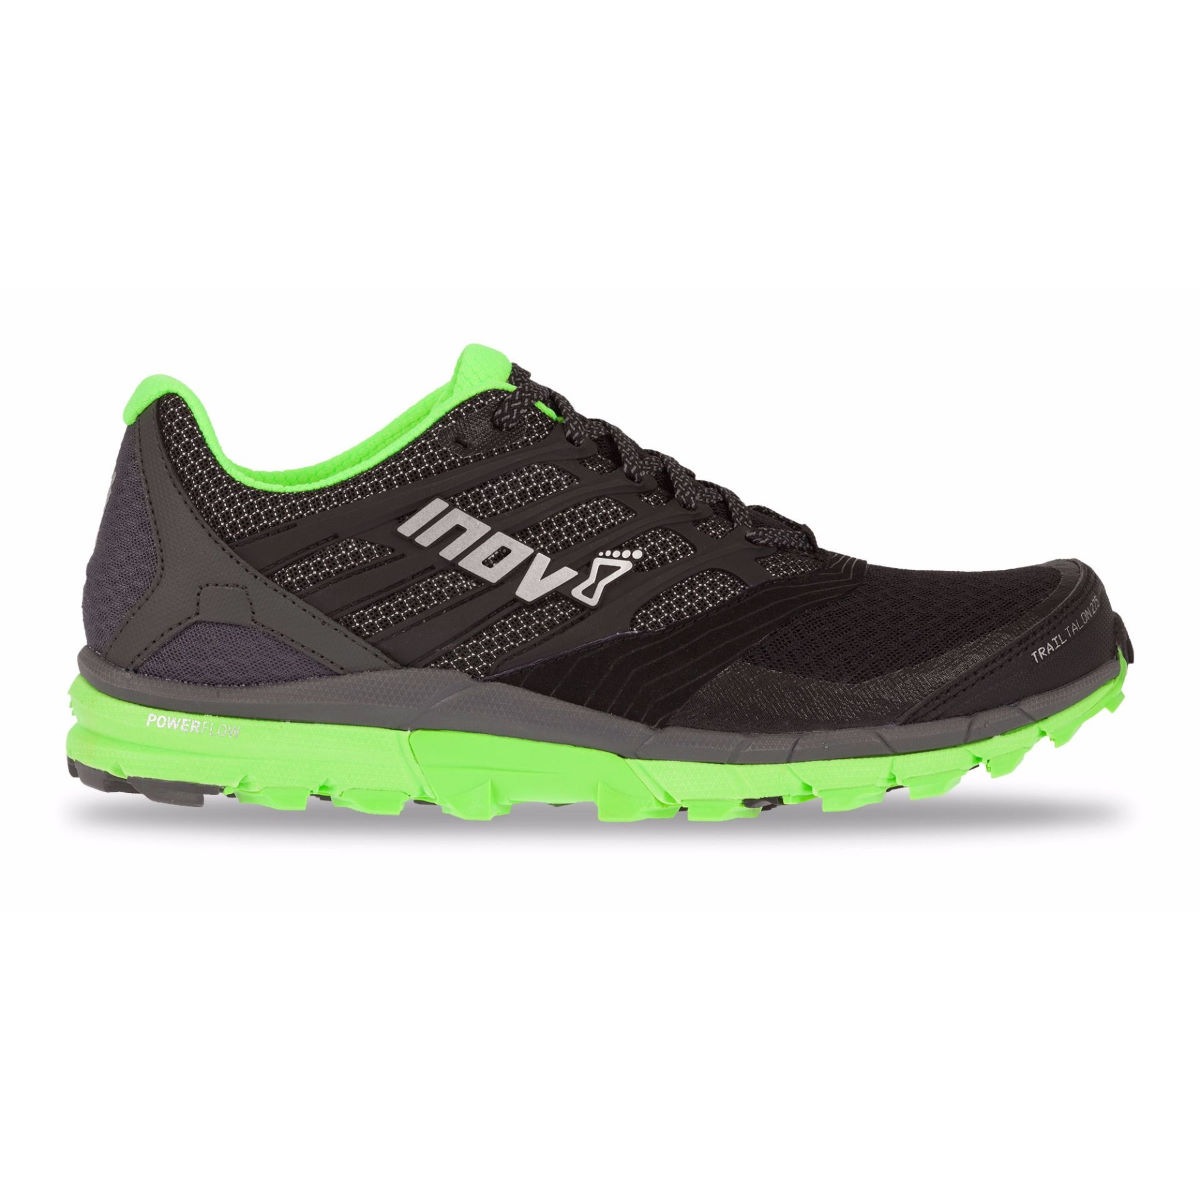 Chaussures Inov-8 Talon 275 - UK 11 BLACK/GREEN